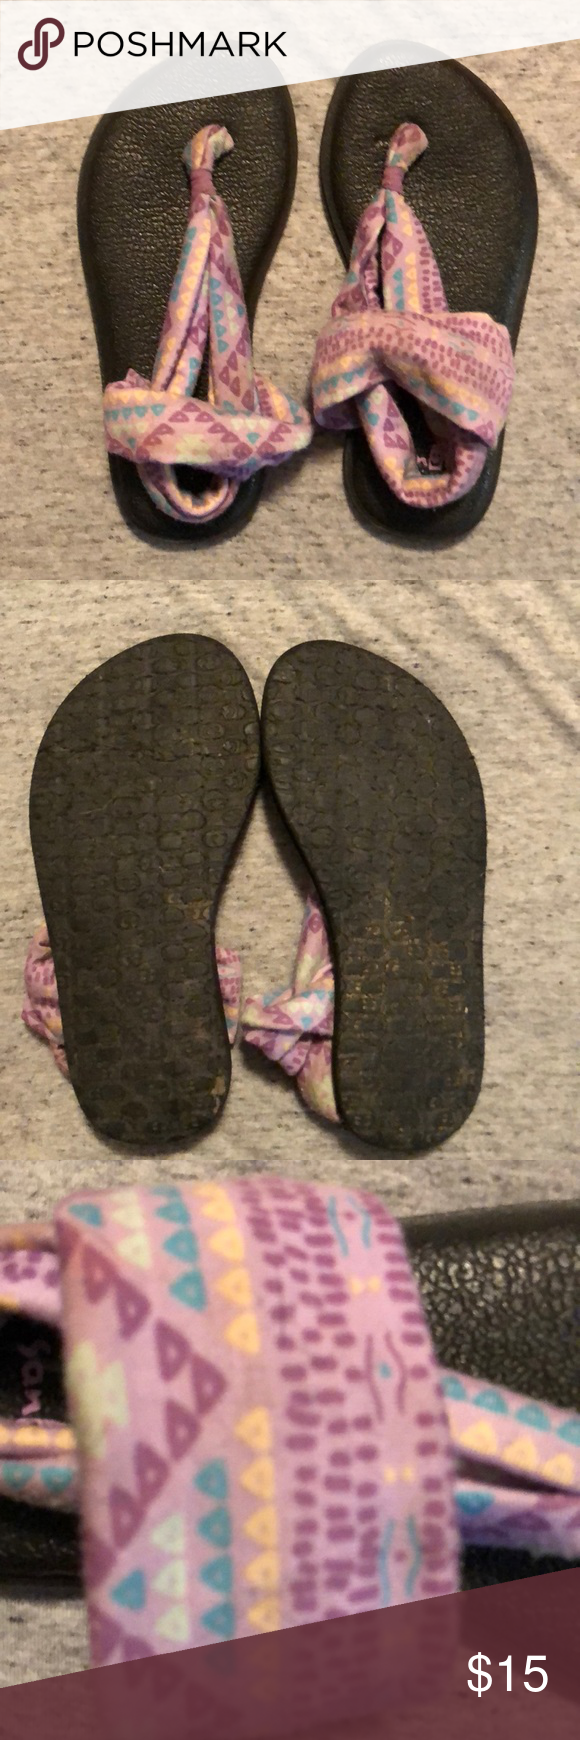 ecf1d00552b8 Girls size 12 Sanuk sandals These are used girls size 12 Sanuk yoga mat  sandals. Light purple material with geometric shapes. In good used  condition.